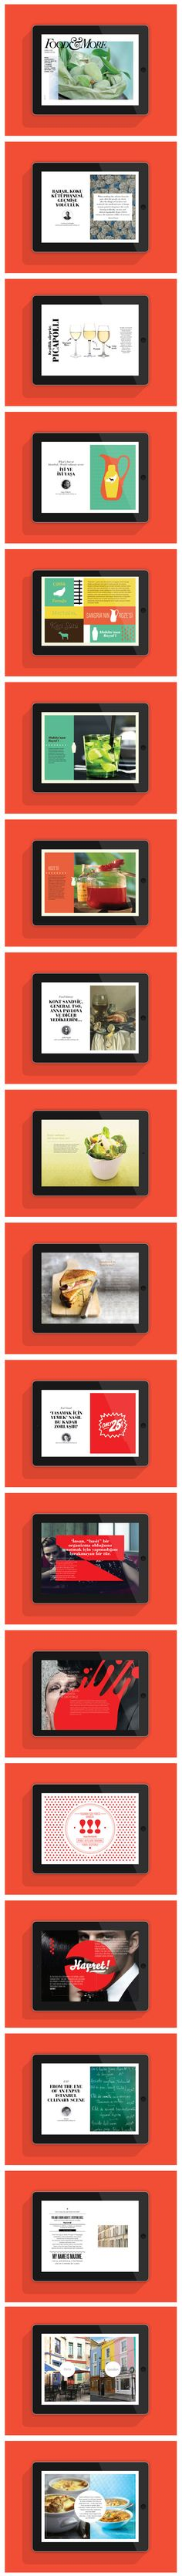 Food & More iPad magazine